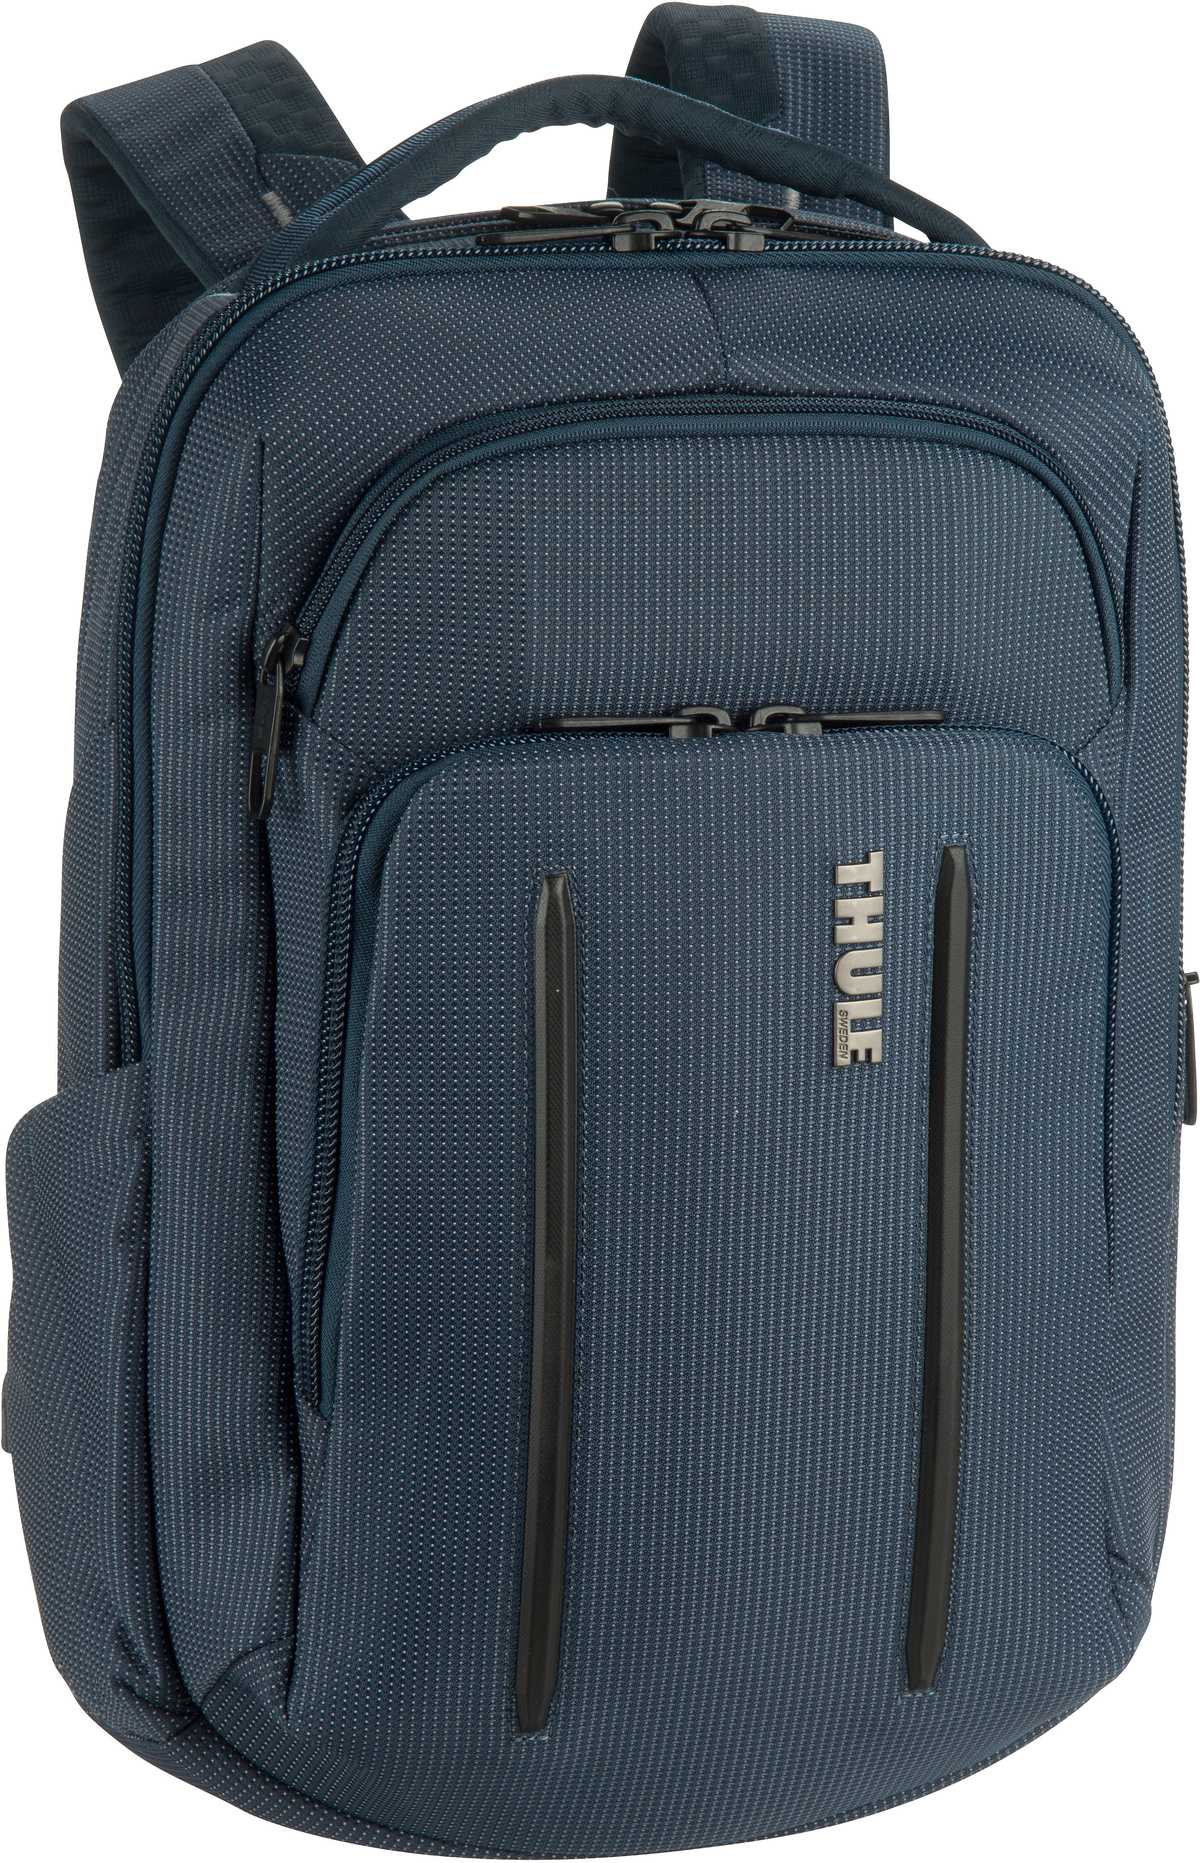 Rucksack / Daypack Crossover 2 Backpack 20L Dark Blue (20 Liter)